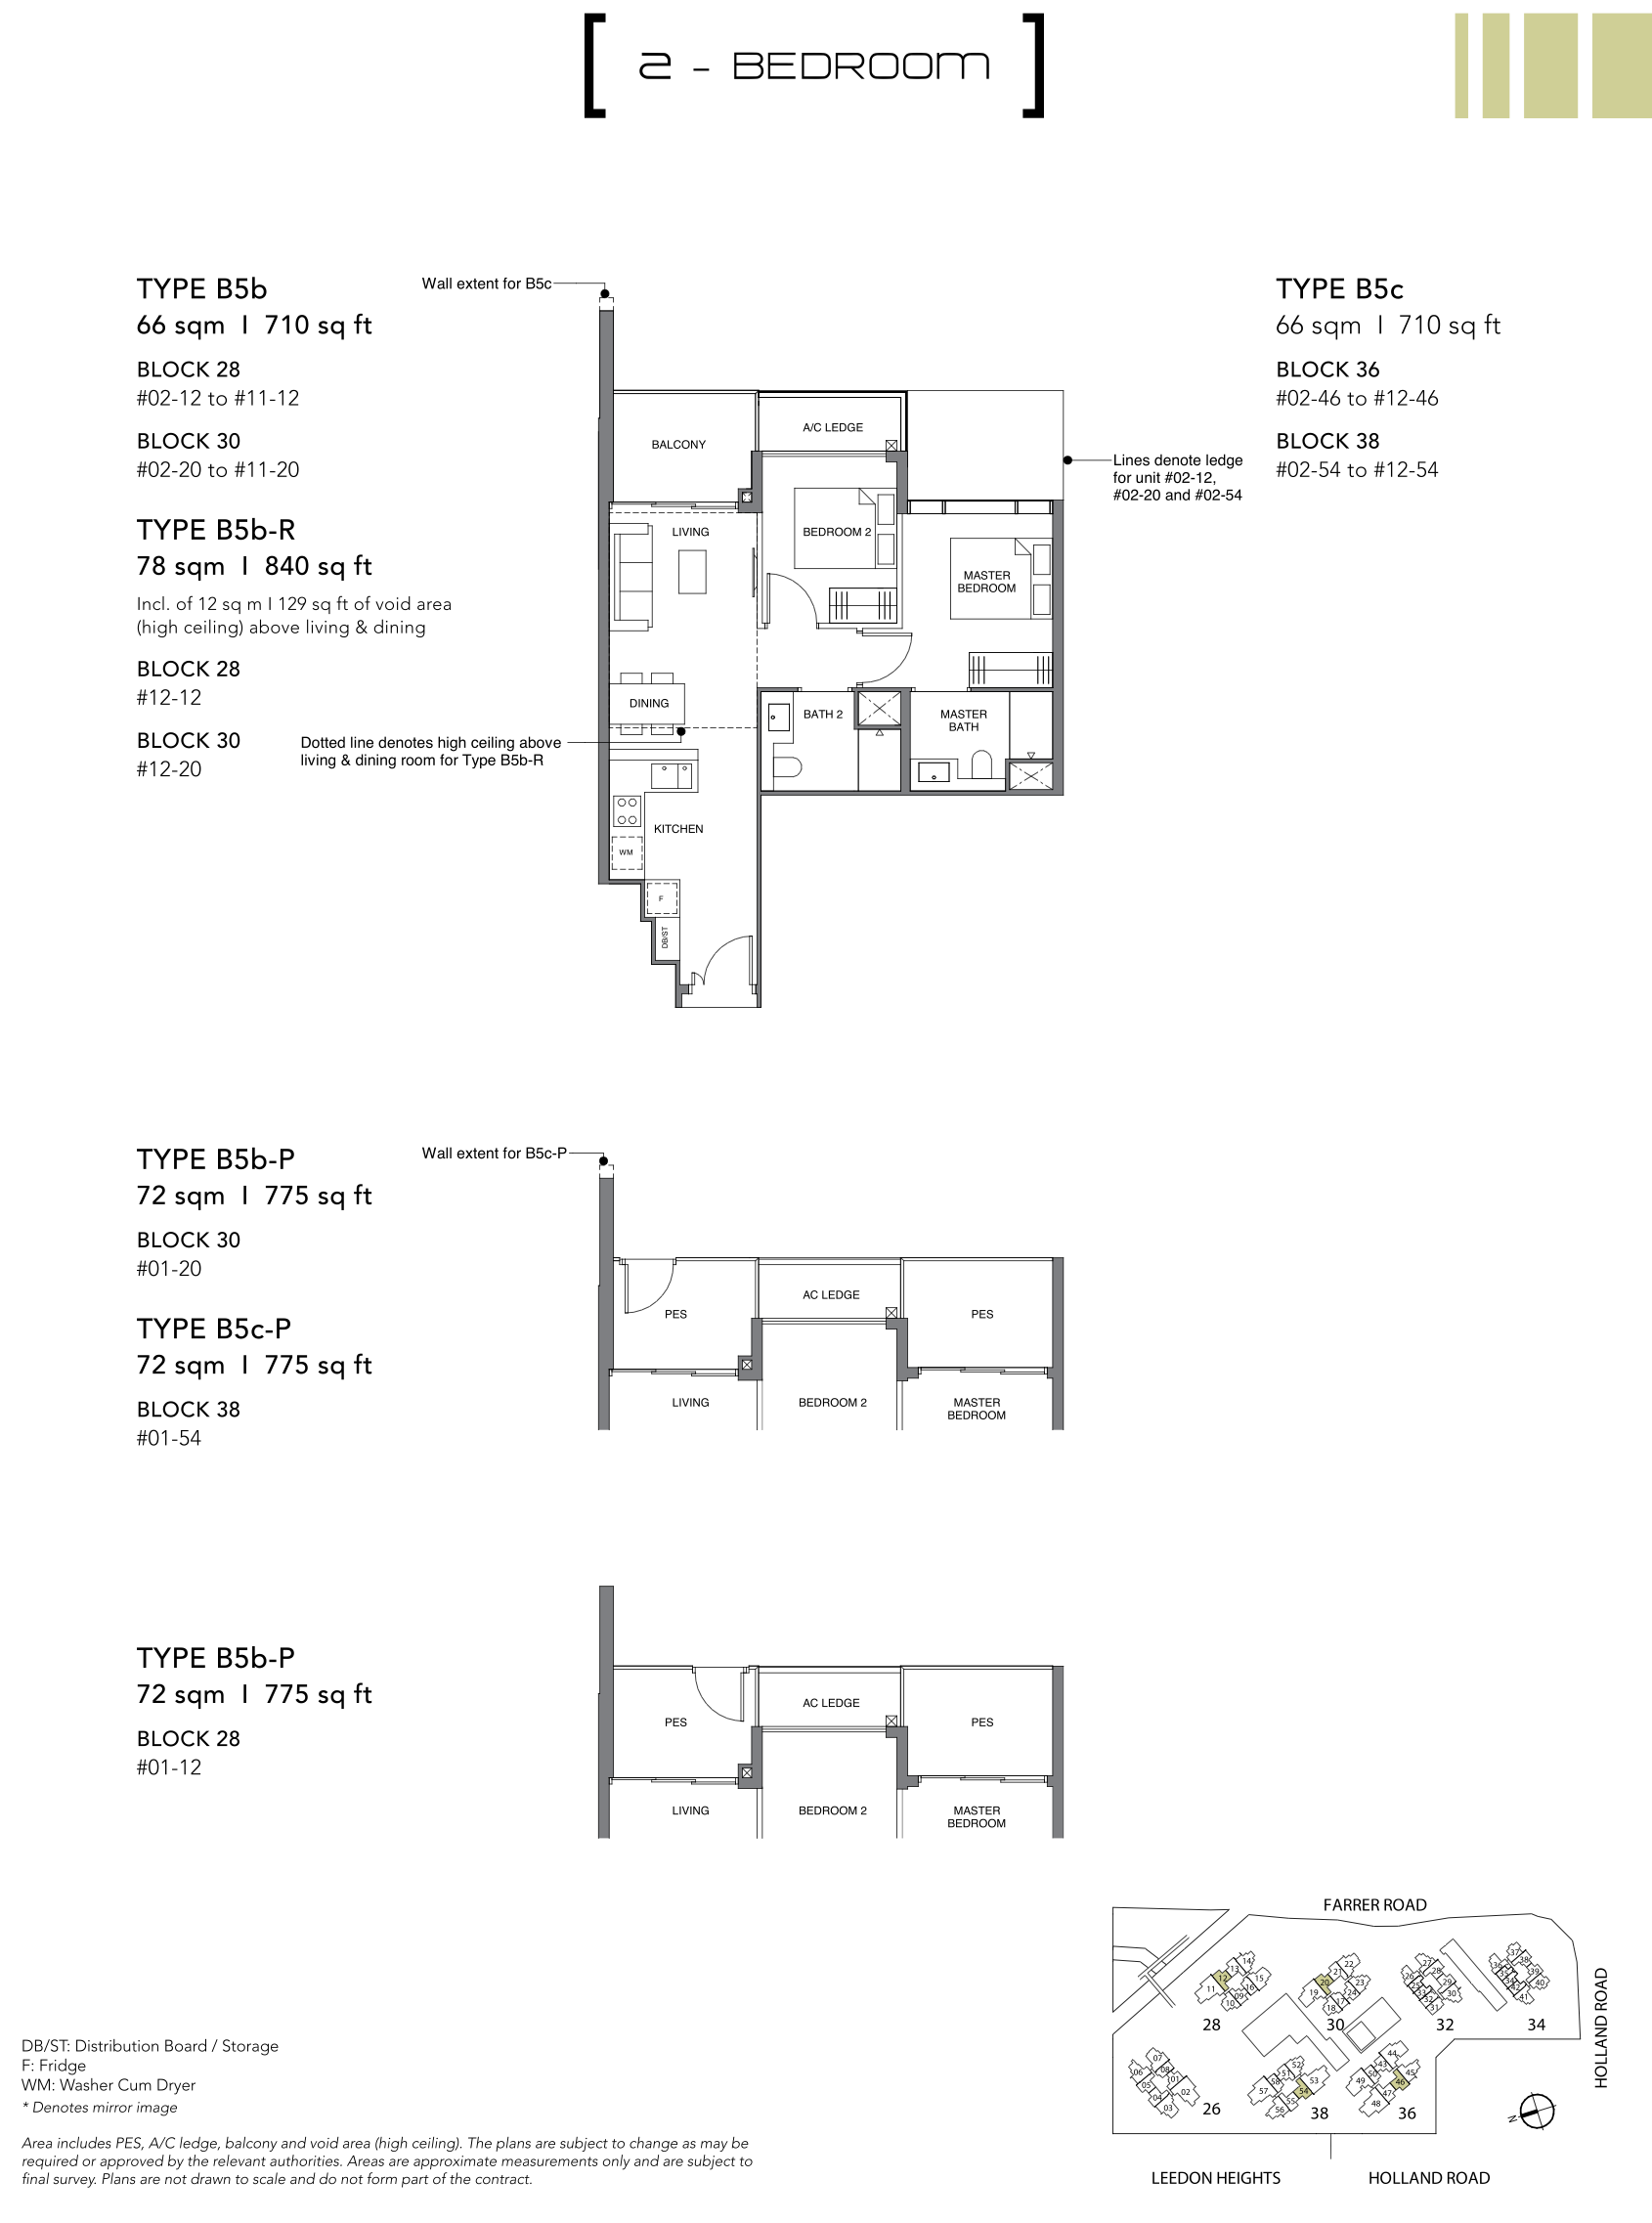 绿墩雅苑公寓户型图 Leedon Green floor plan 2 bedroom b5b-b5c